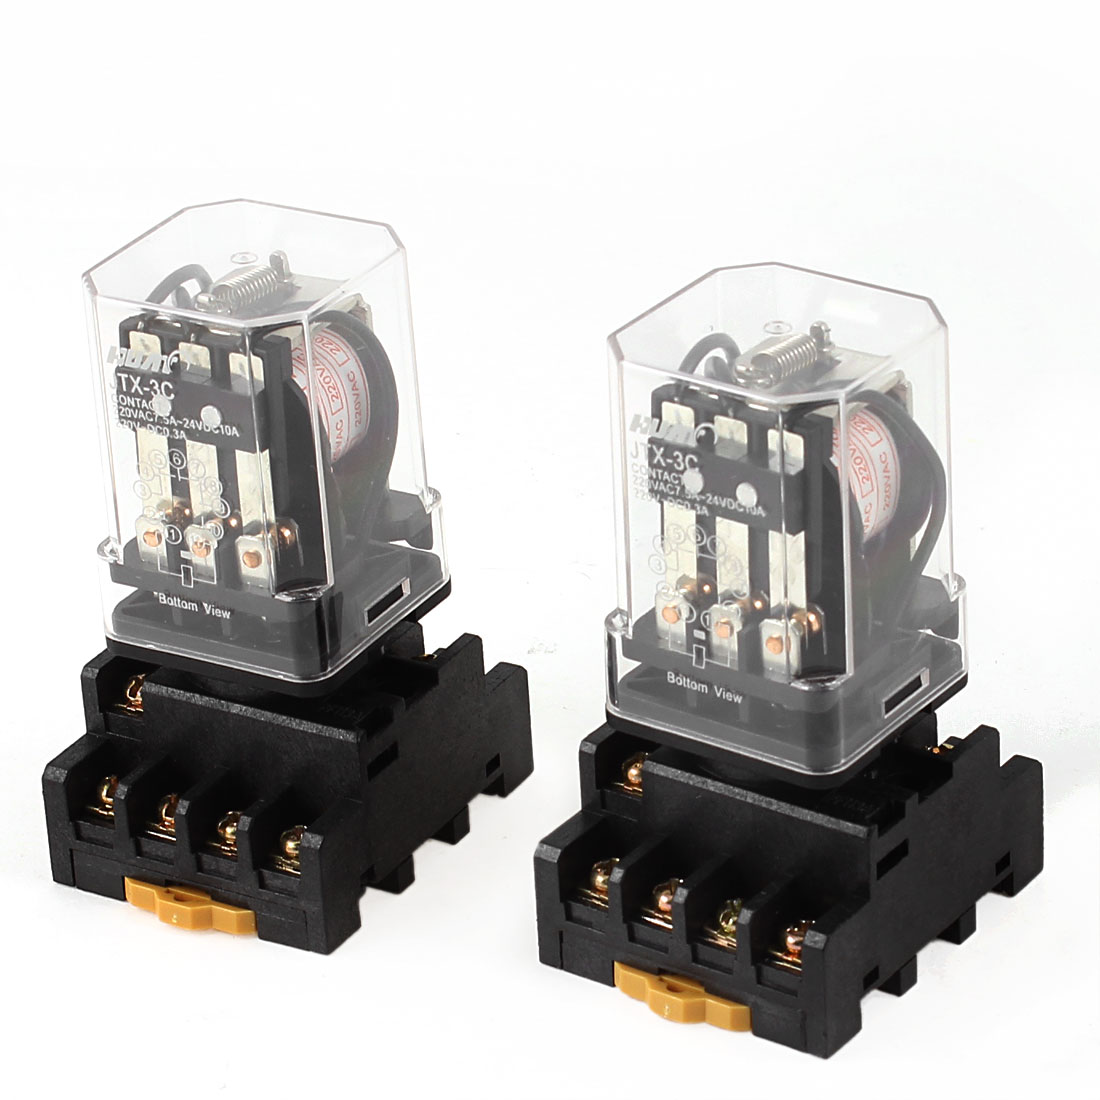 AC 220V Coil 3PDT 11 Pins Electromagnetic Relay 2pcs + 35mm DIN Rail Socket Base